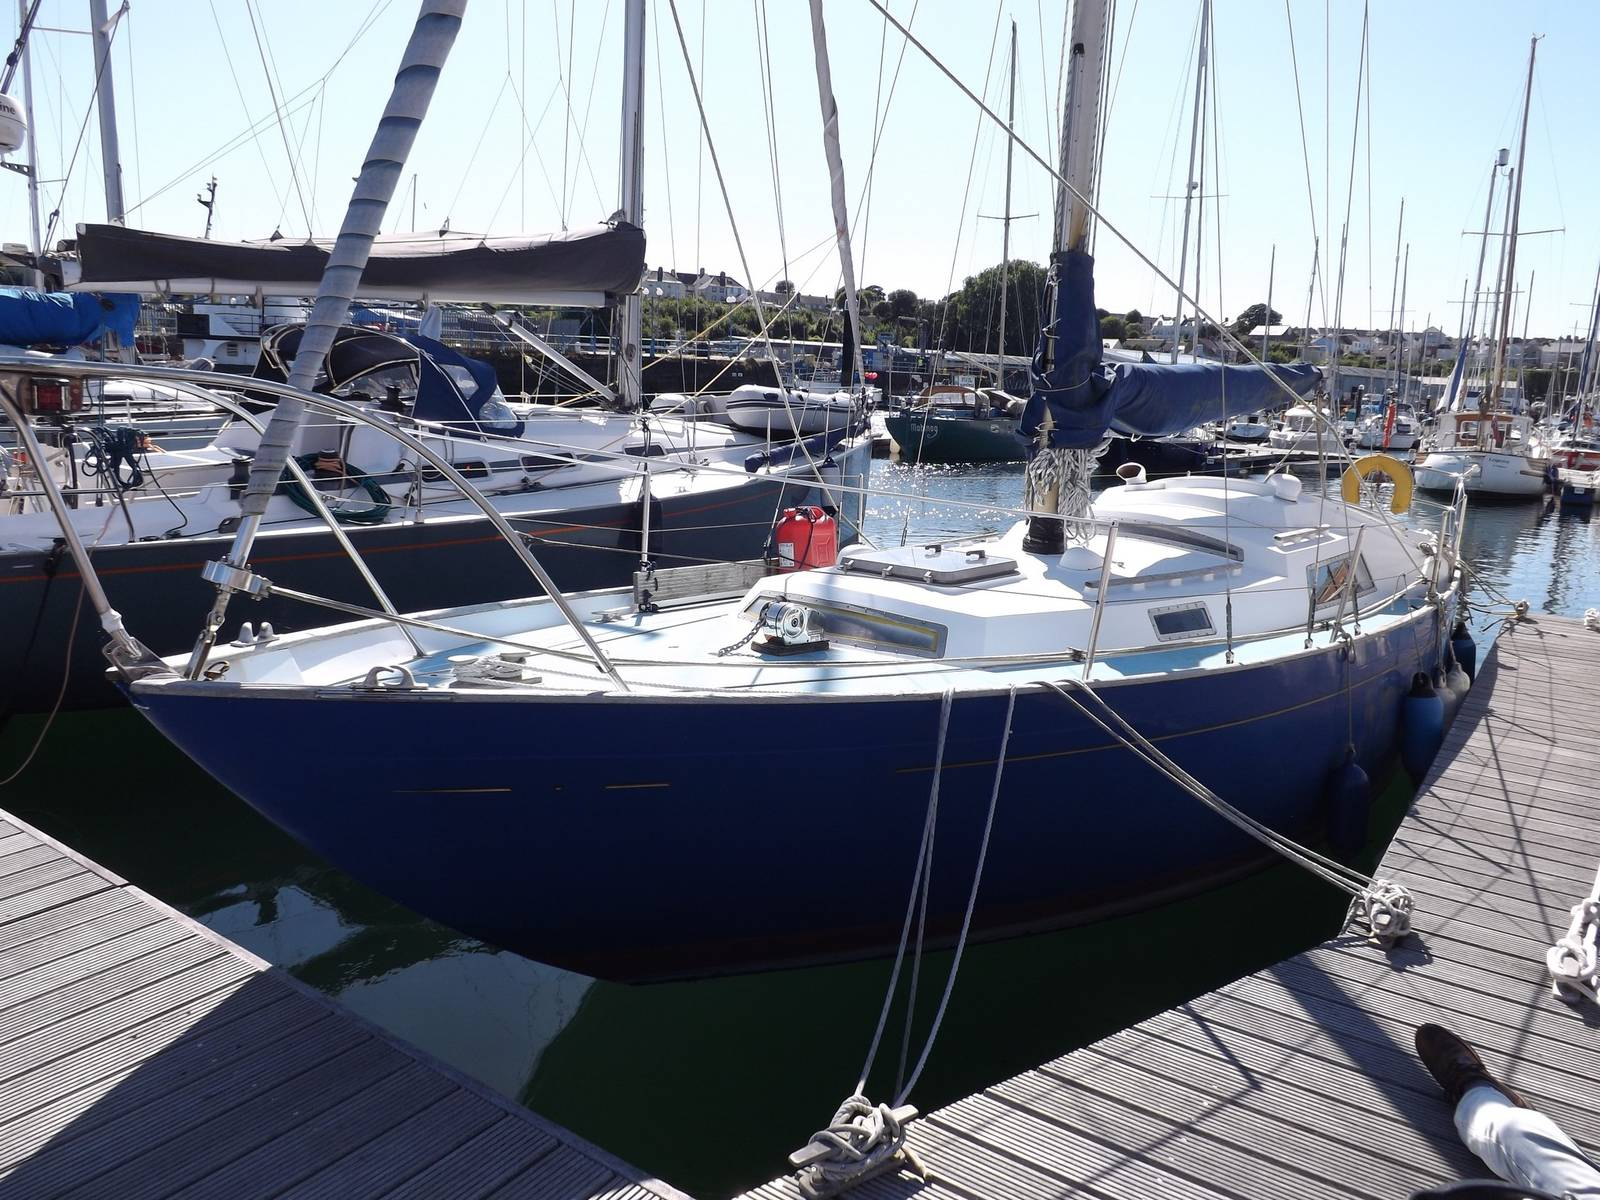 Nicholson 32 - Yachts.co Milford Haven 01646 278270